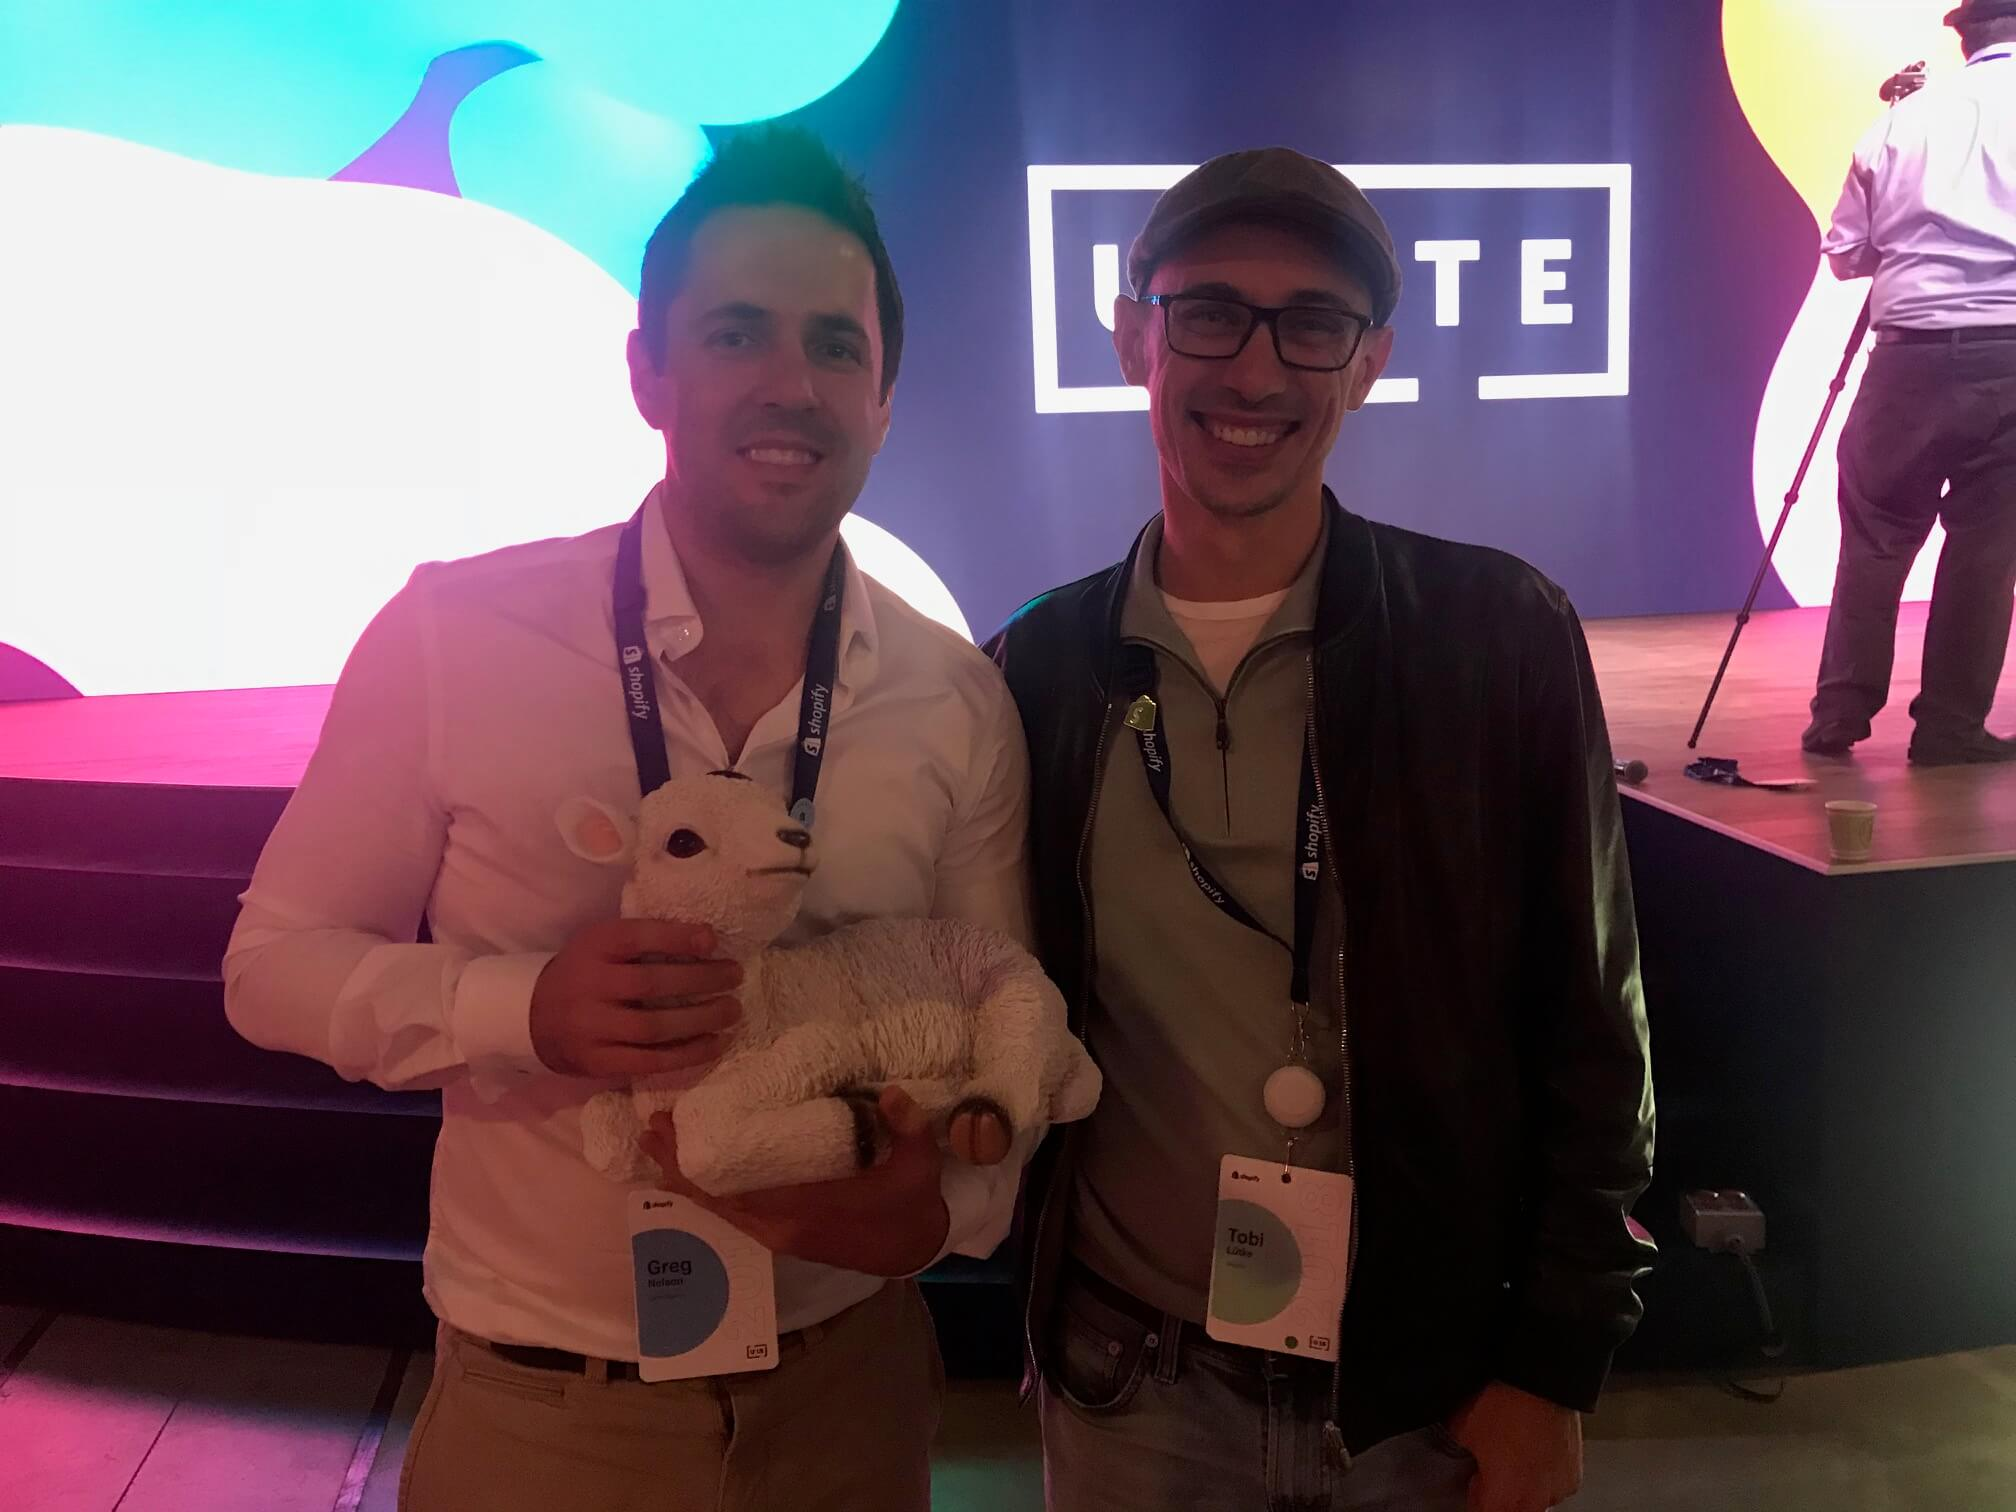 Greg Nelson and Shopify CEO standing with A lamb at Shopify Unite